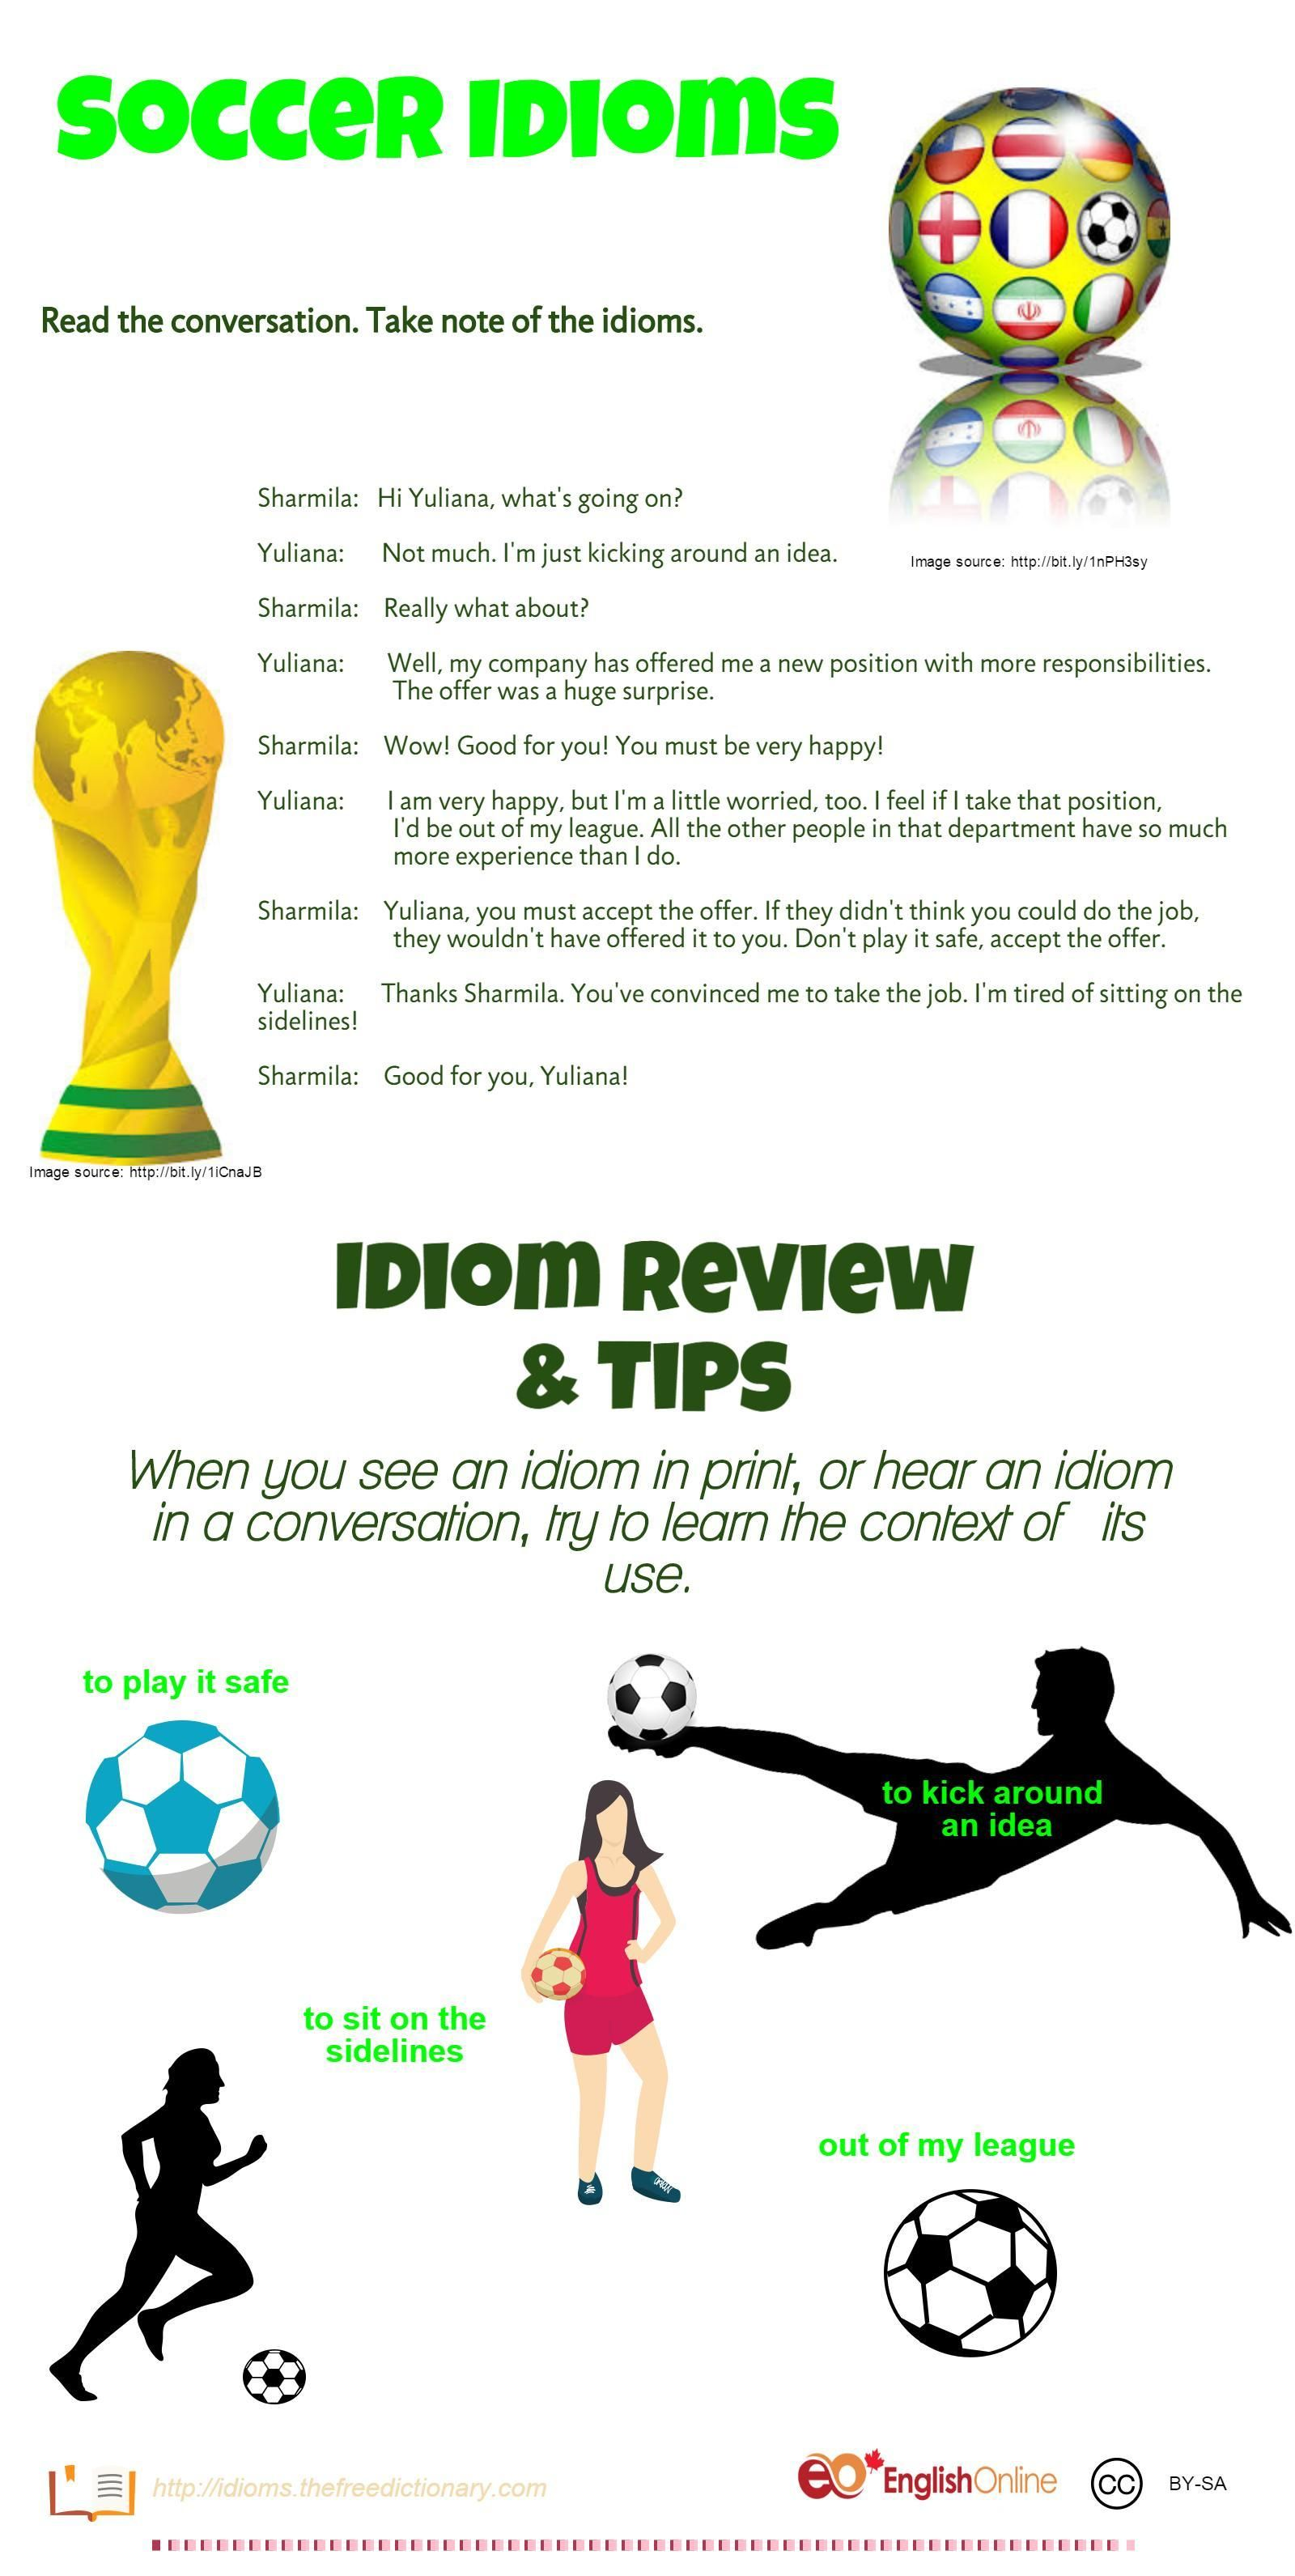 Soccer Idioms Infographic Canada Manitoba Esl Eal